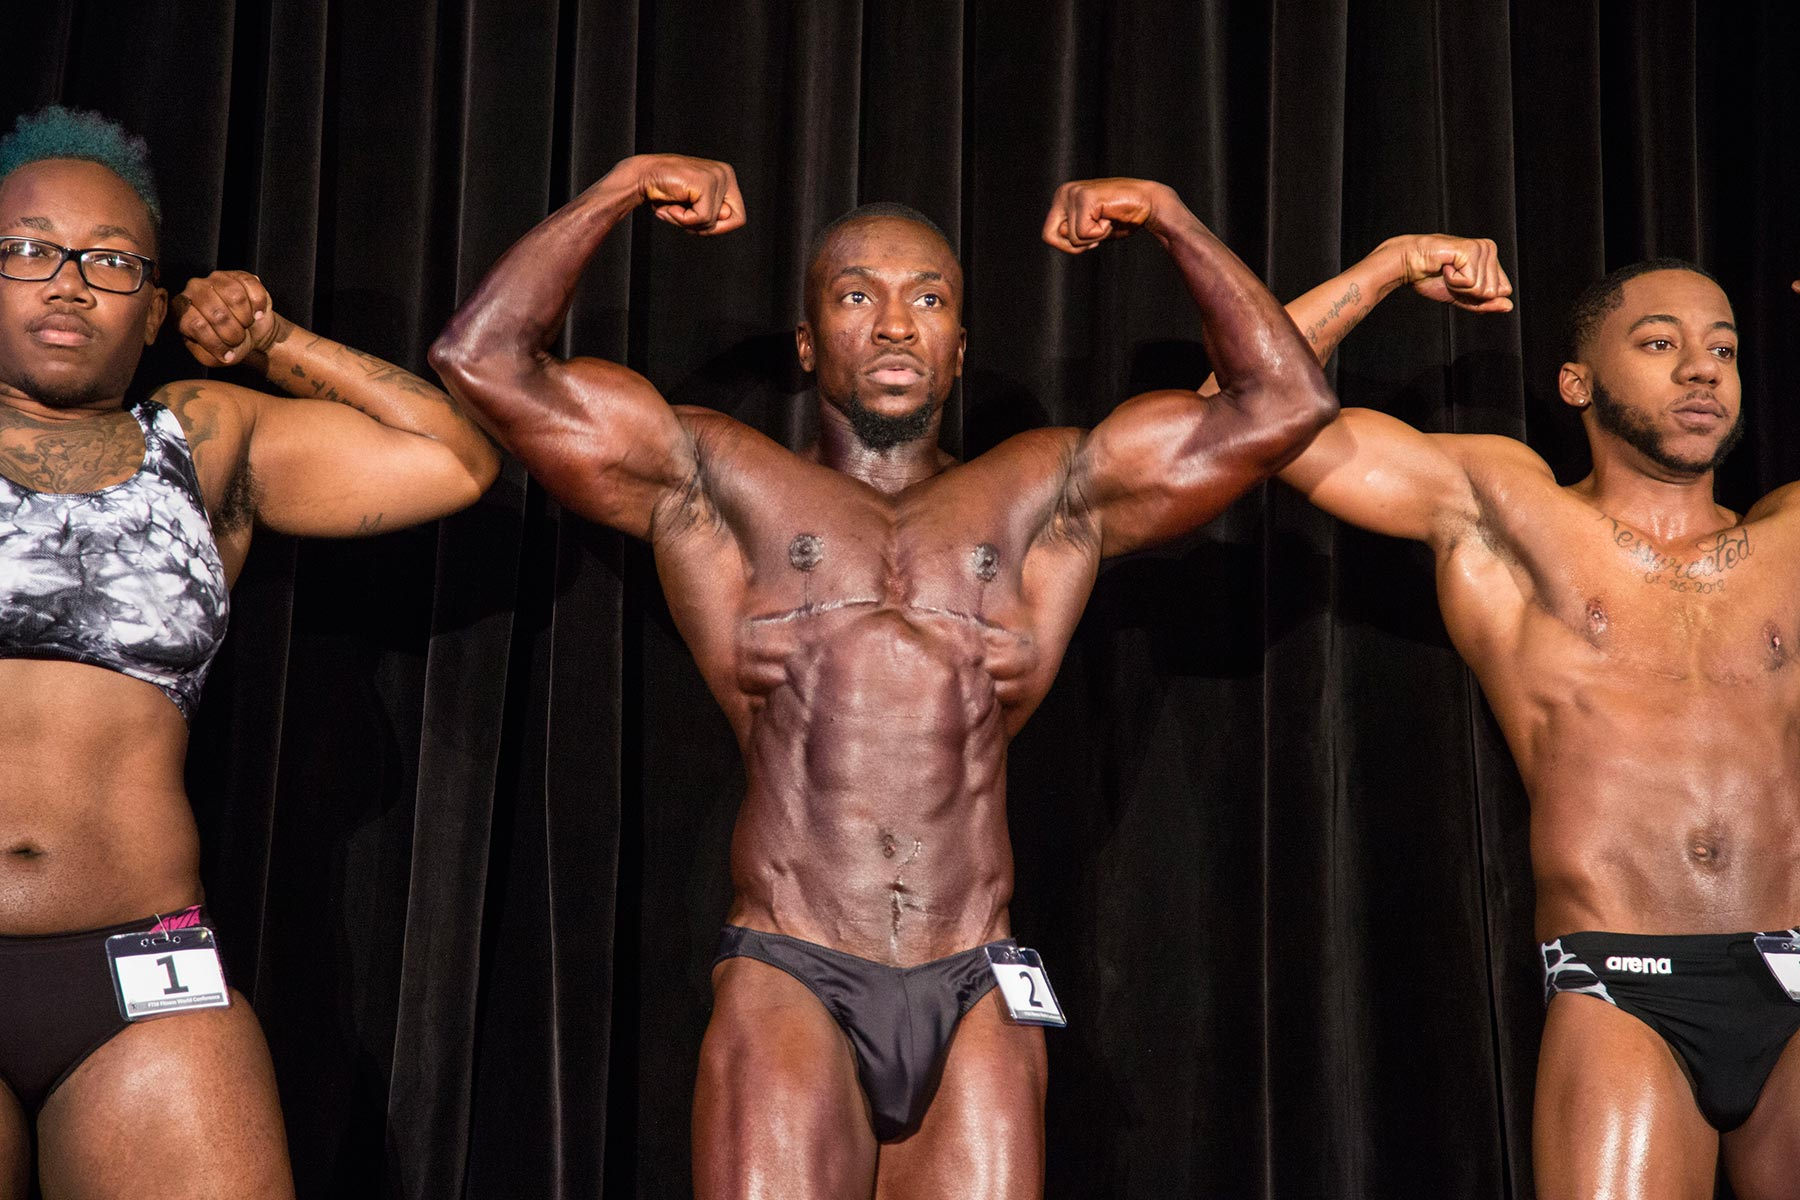 """SHAWN, 37 (Atlanta, GA)    Two-time winner of past Trans FitCons, Shawn now serves as a judge at this year's competition (a sudden serious illness knocked Shawn out of the running for a """"three-peat"""").But he's still known as the """"godfather"""" of trans male bodybuilding. [Secondary Subject]"""